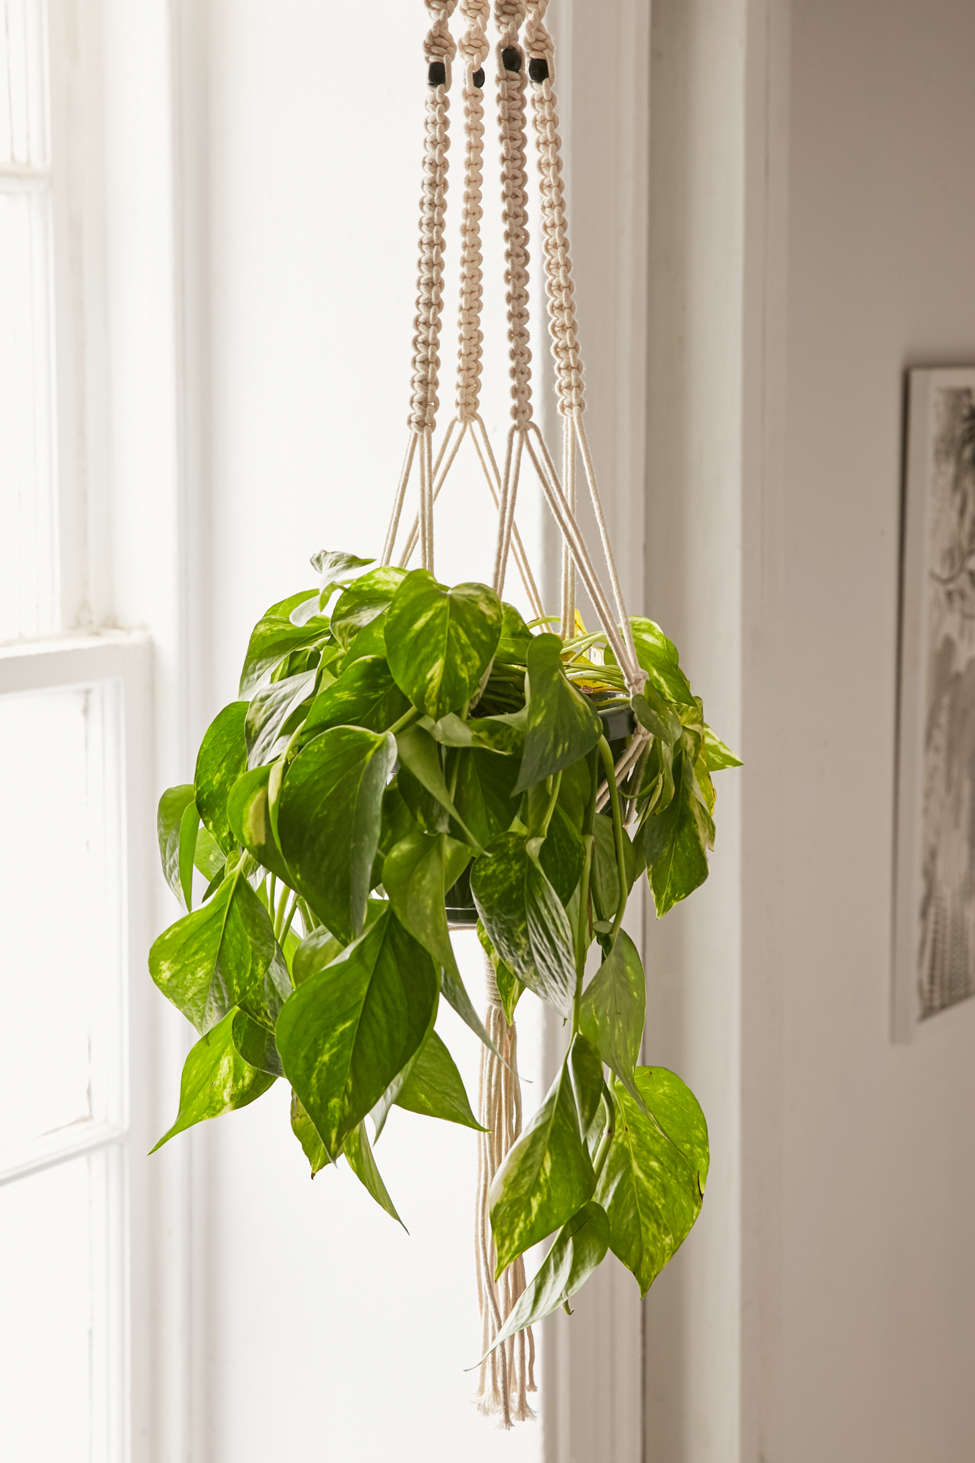 12 Plant Gift Ideas For The Plant Lover In Your Life